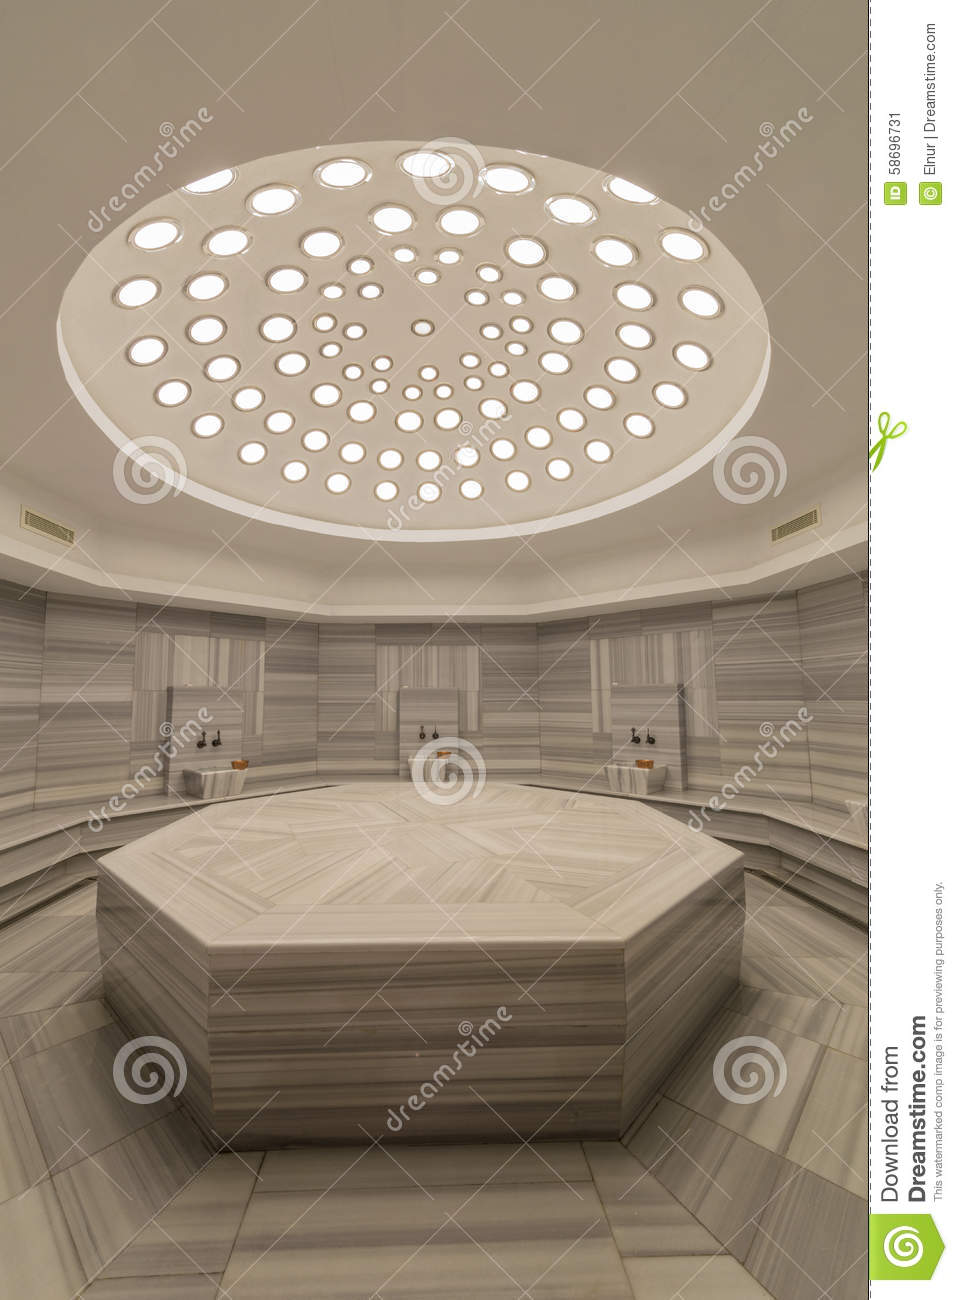 Turkish Bath Design Home on gym home, steam room home, private beach home, safe home, animation home, lounge home, internet home, sauna home, hot tub home, car parking home, turkish decor, turkish furniture,